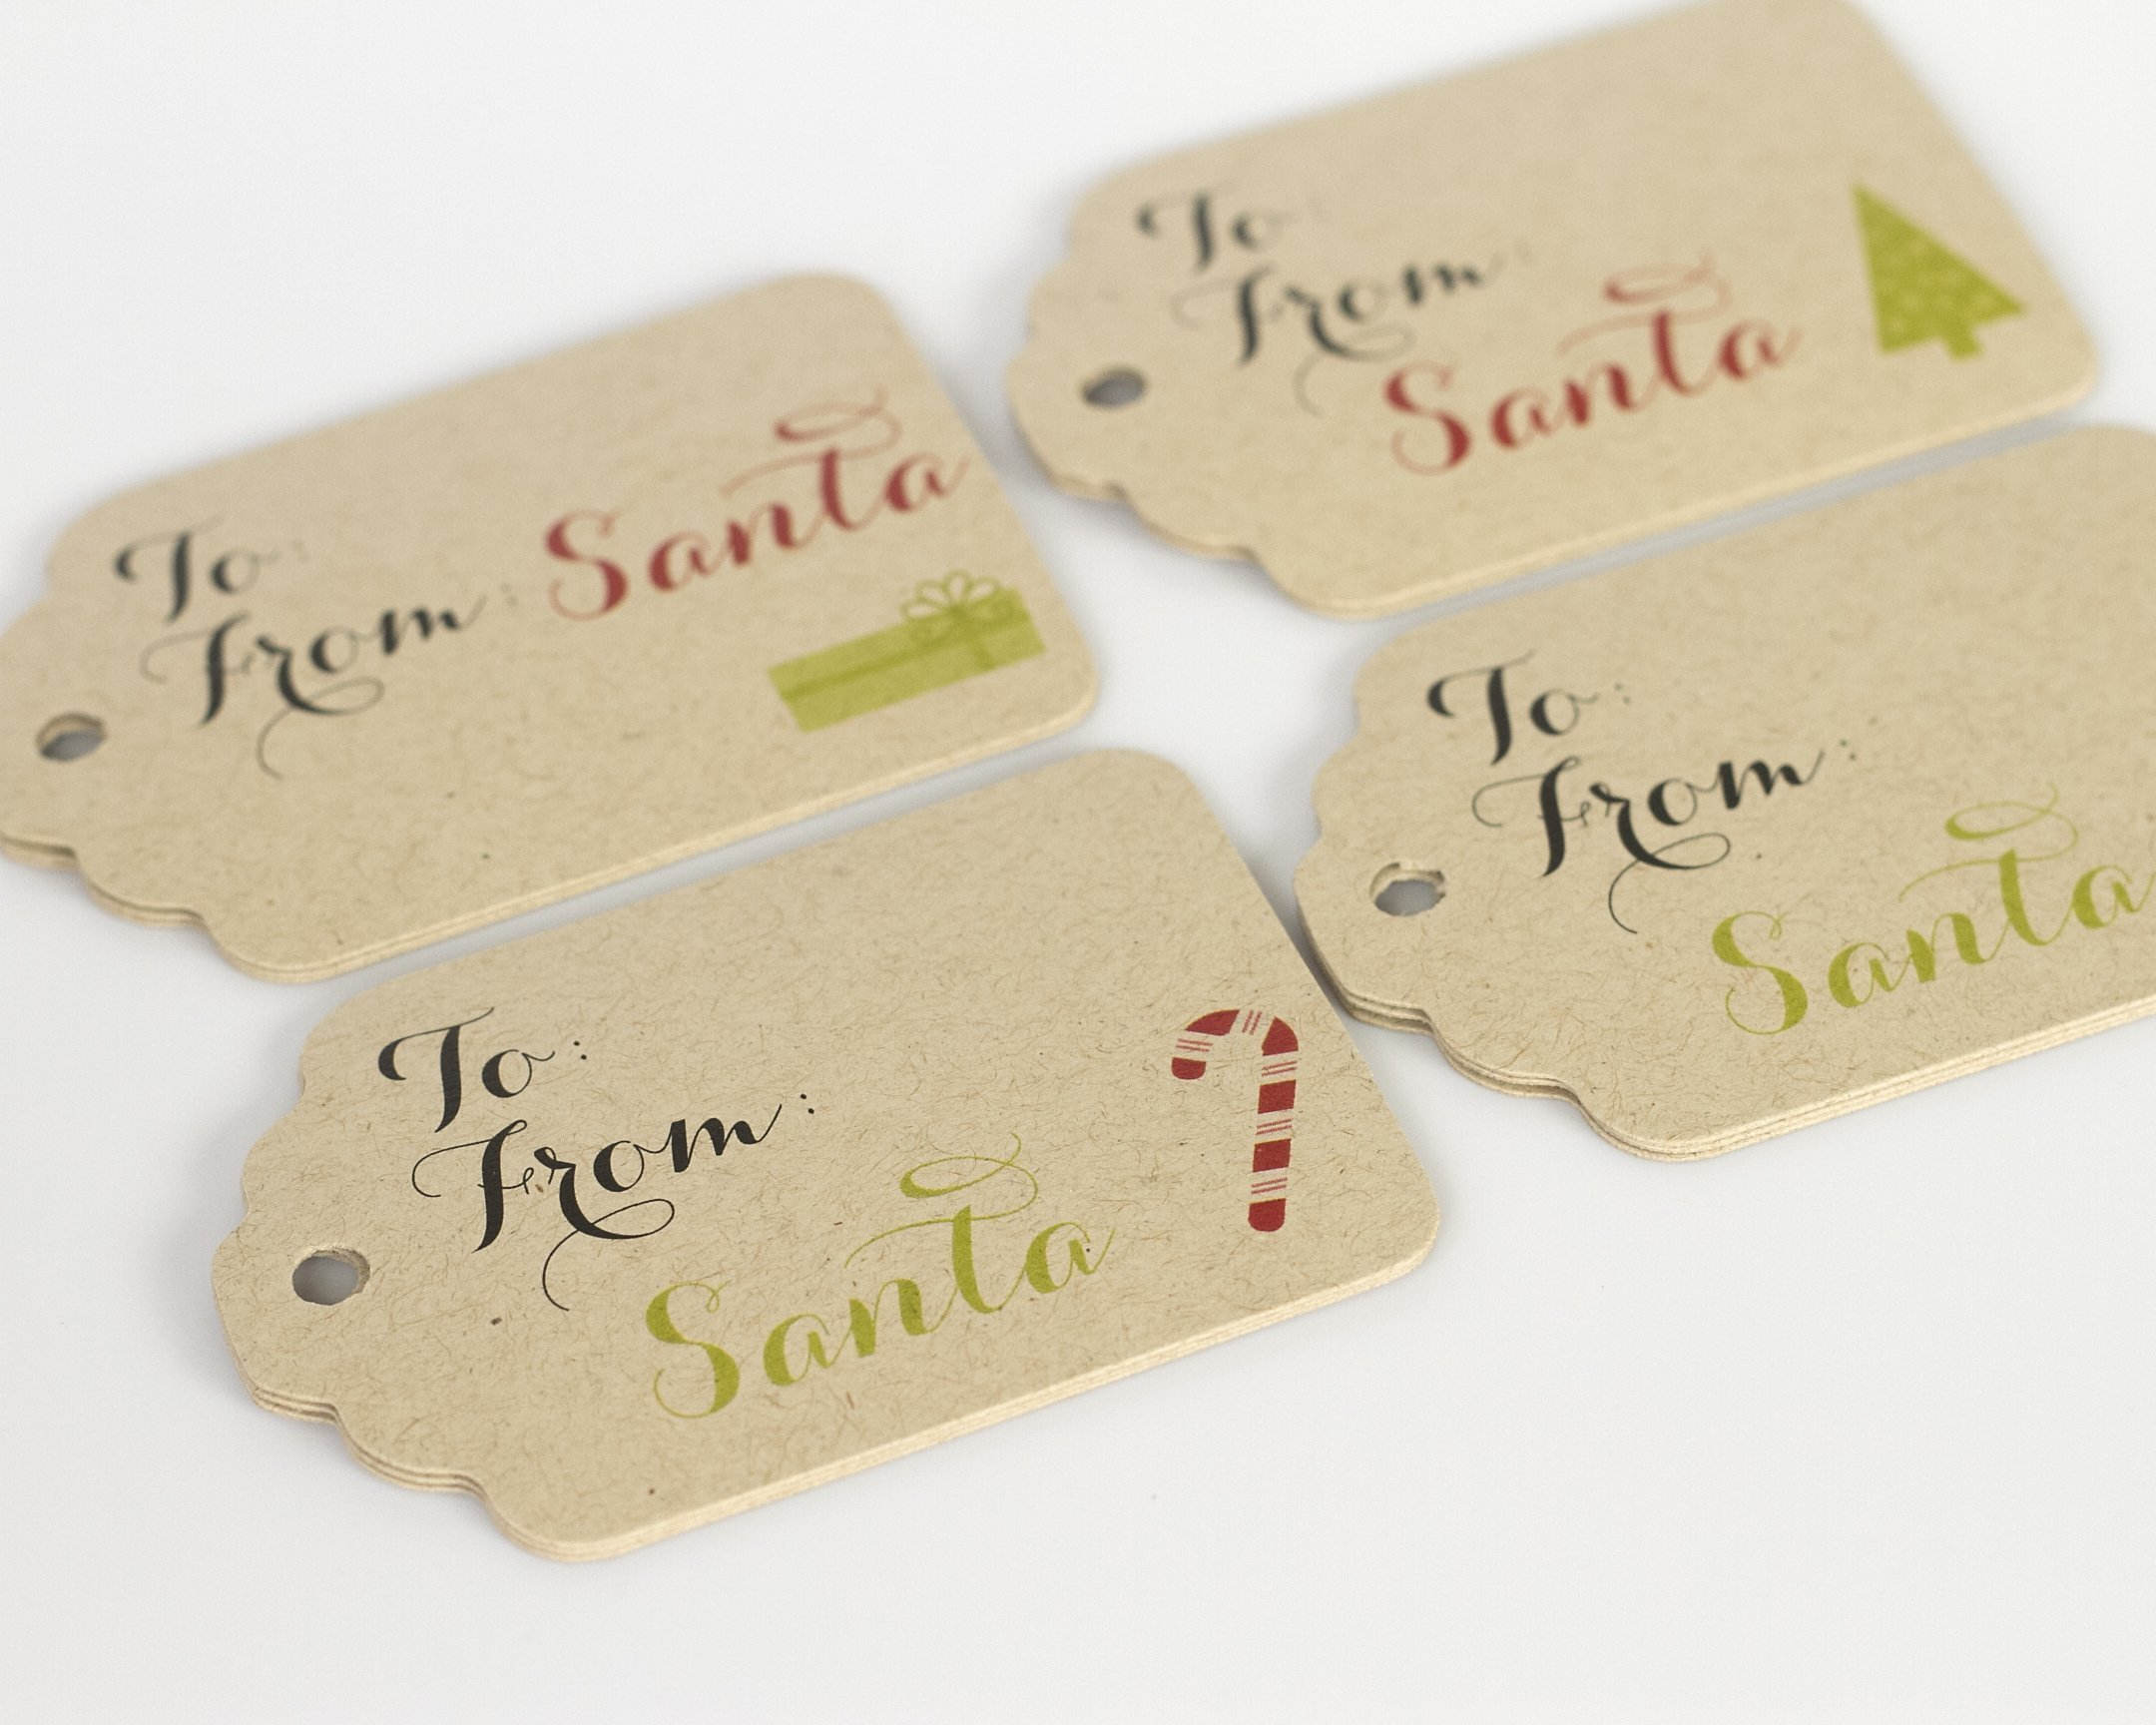 24 Christmas Gift Wrap Kraft Tags, From Santa Gift Tags (ST-112-KR)